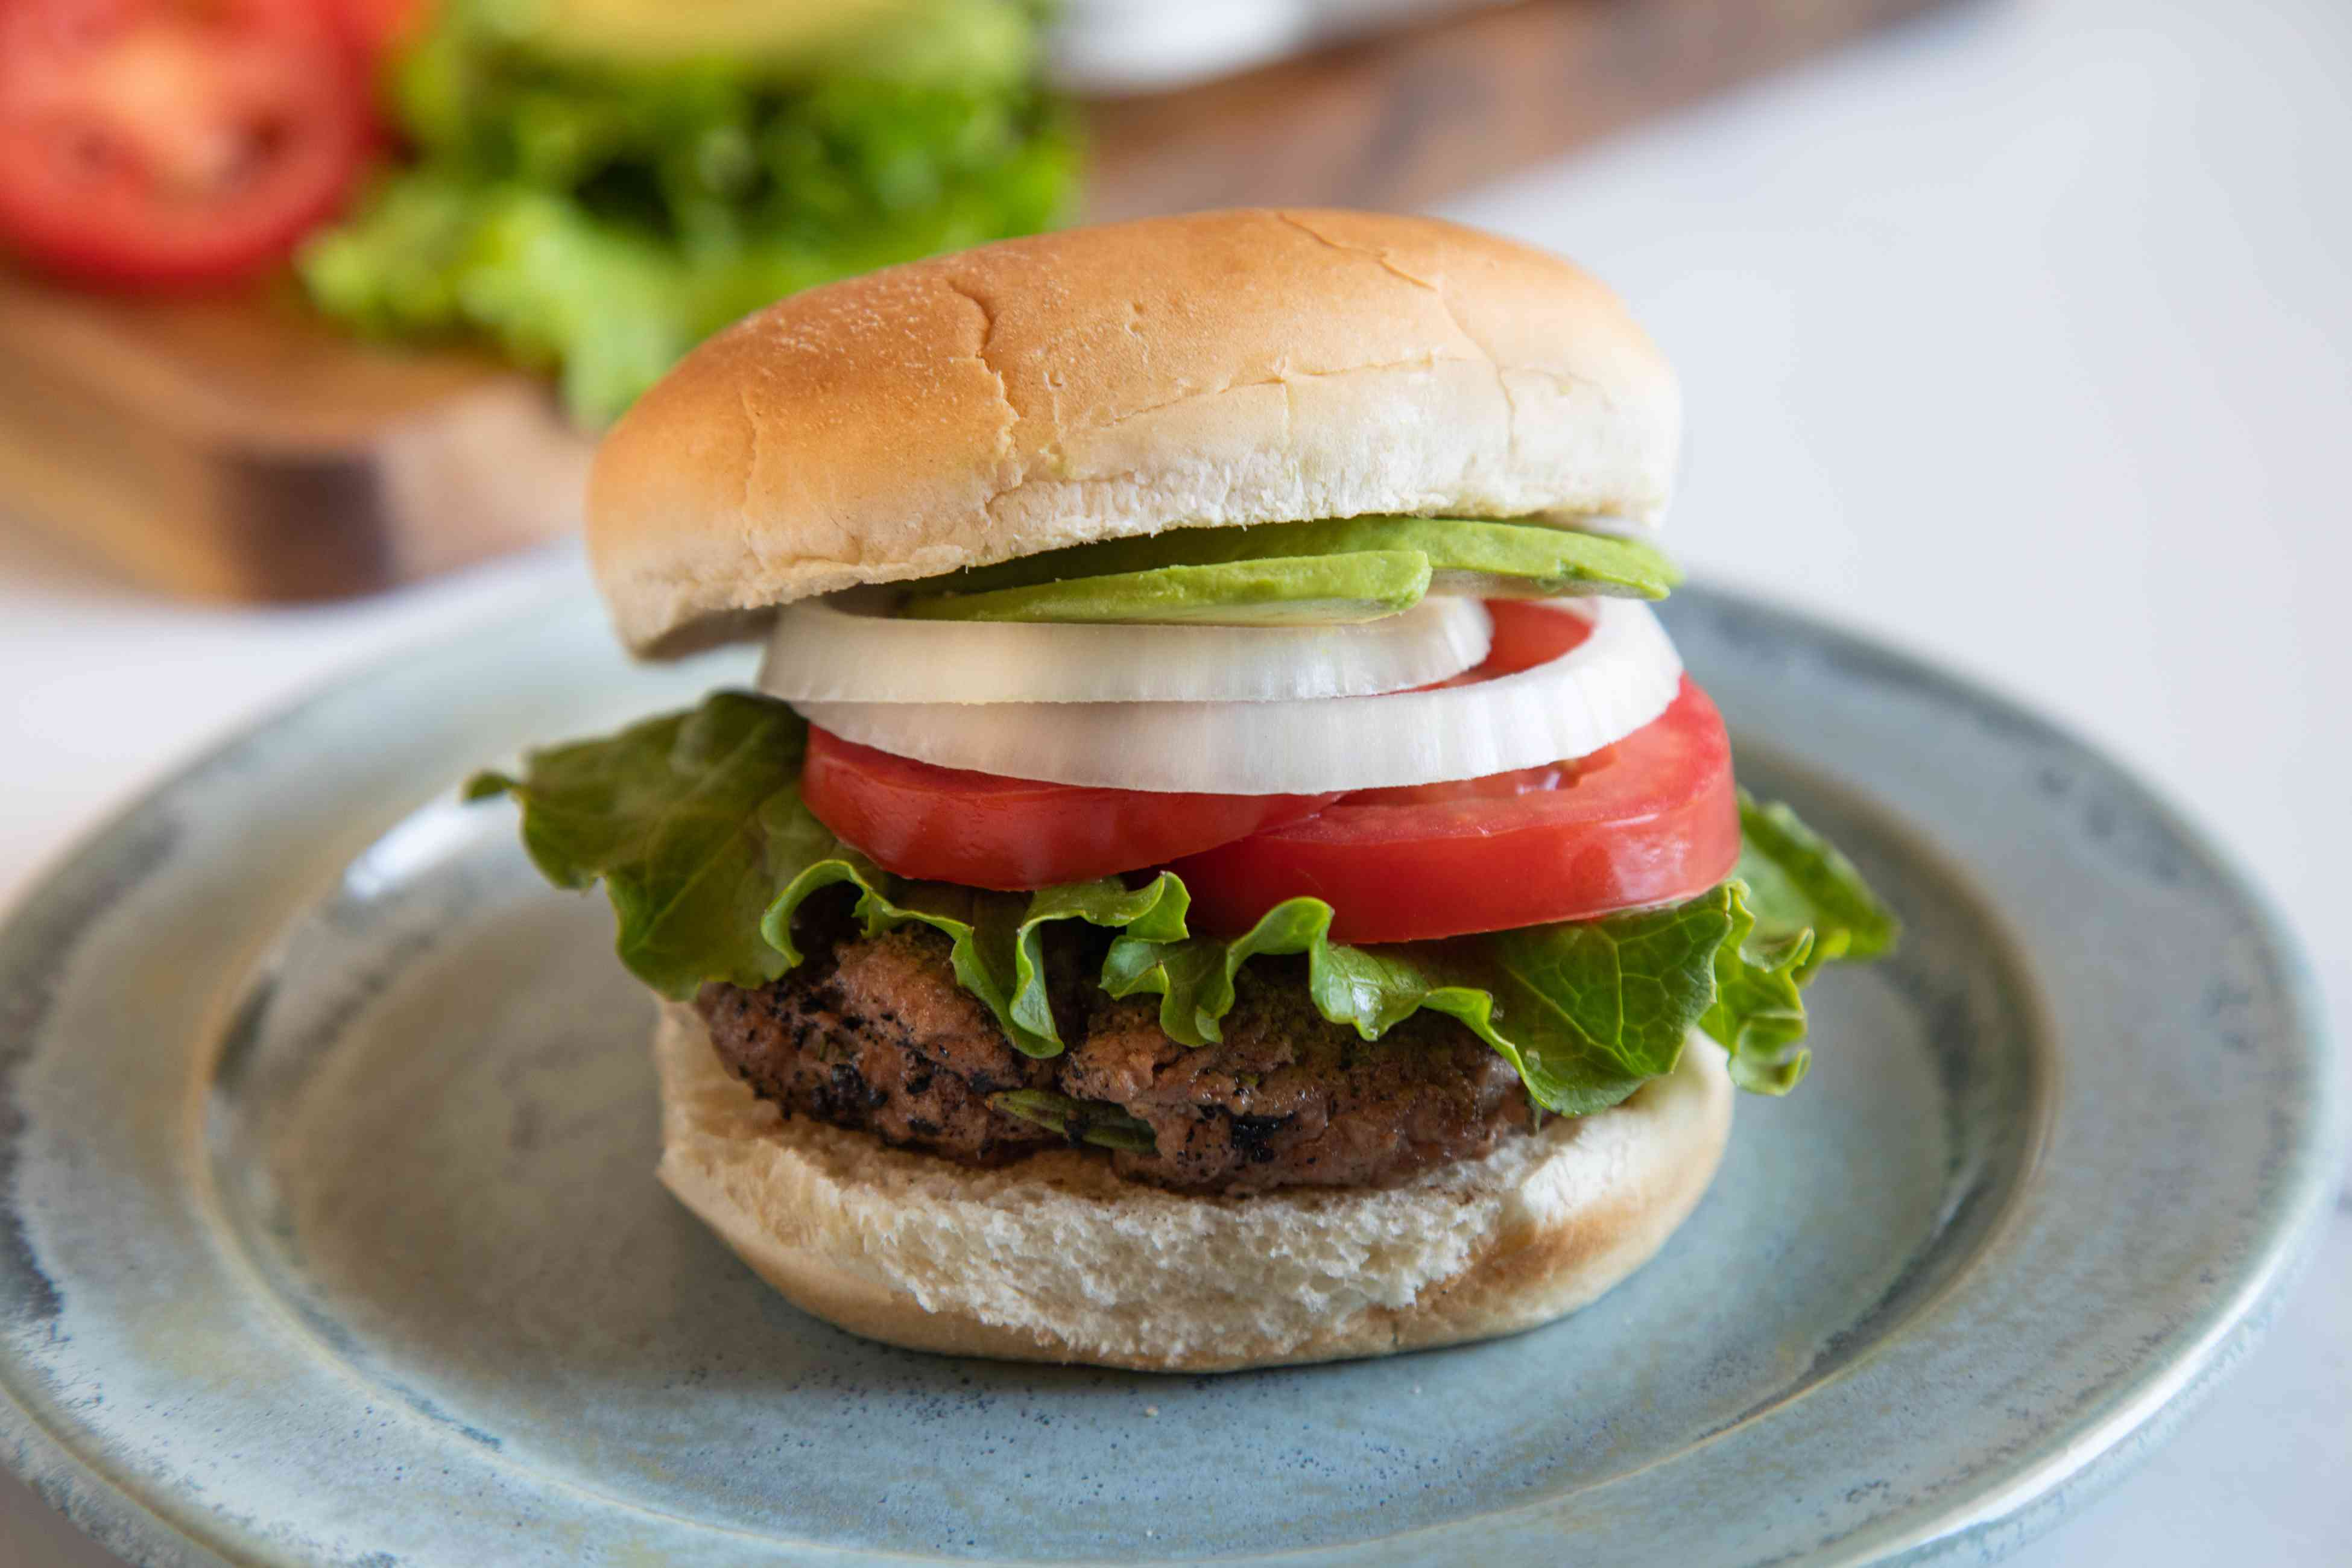 Side view of a hamburger with toppings.